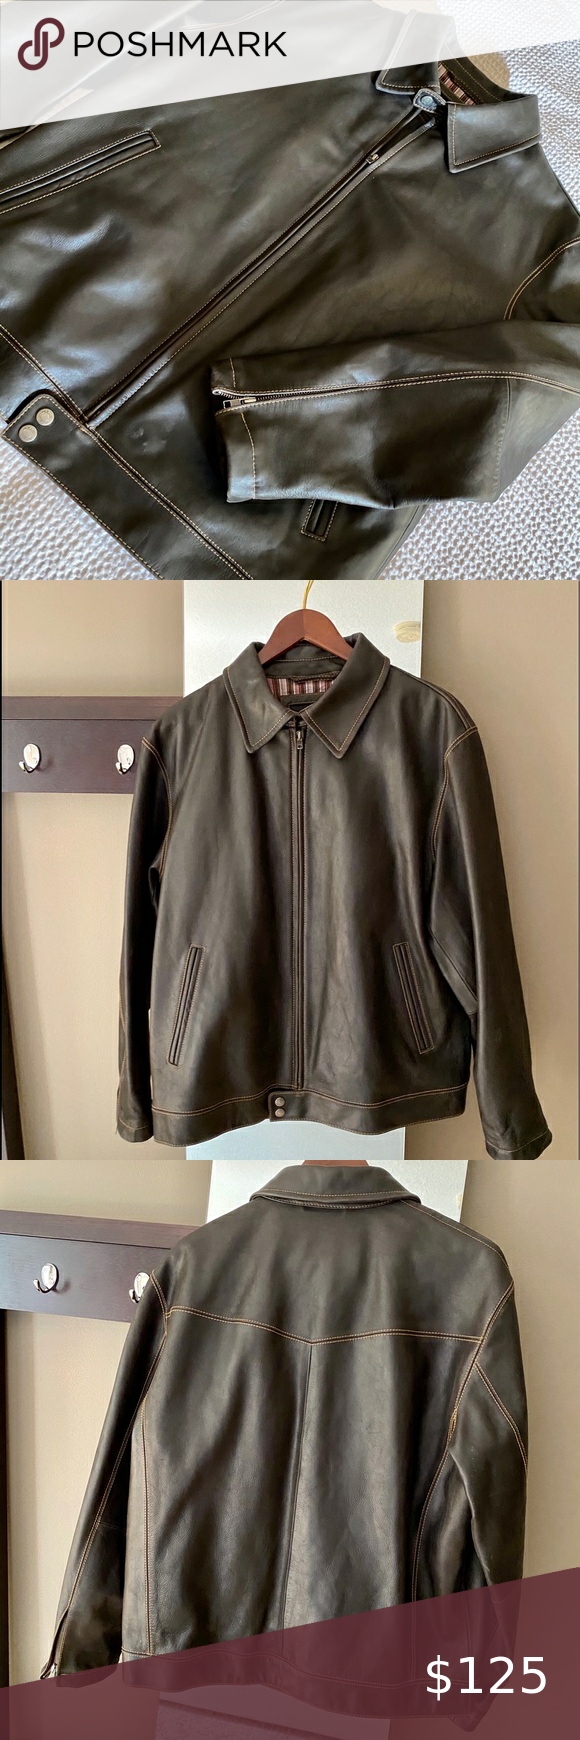 Men S Murano Leather Jacket In 2020 Leather Jacket Clothes Design Lambskin Jacket [ 1740 x 580 Pixel ]